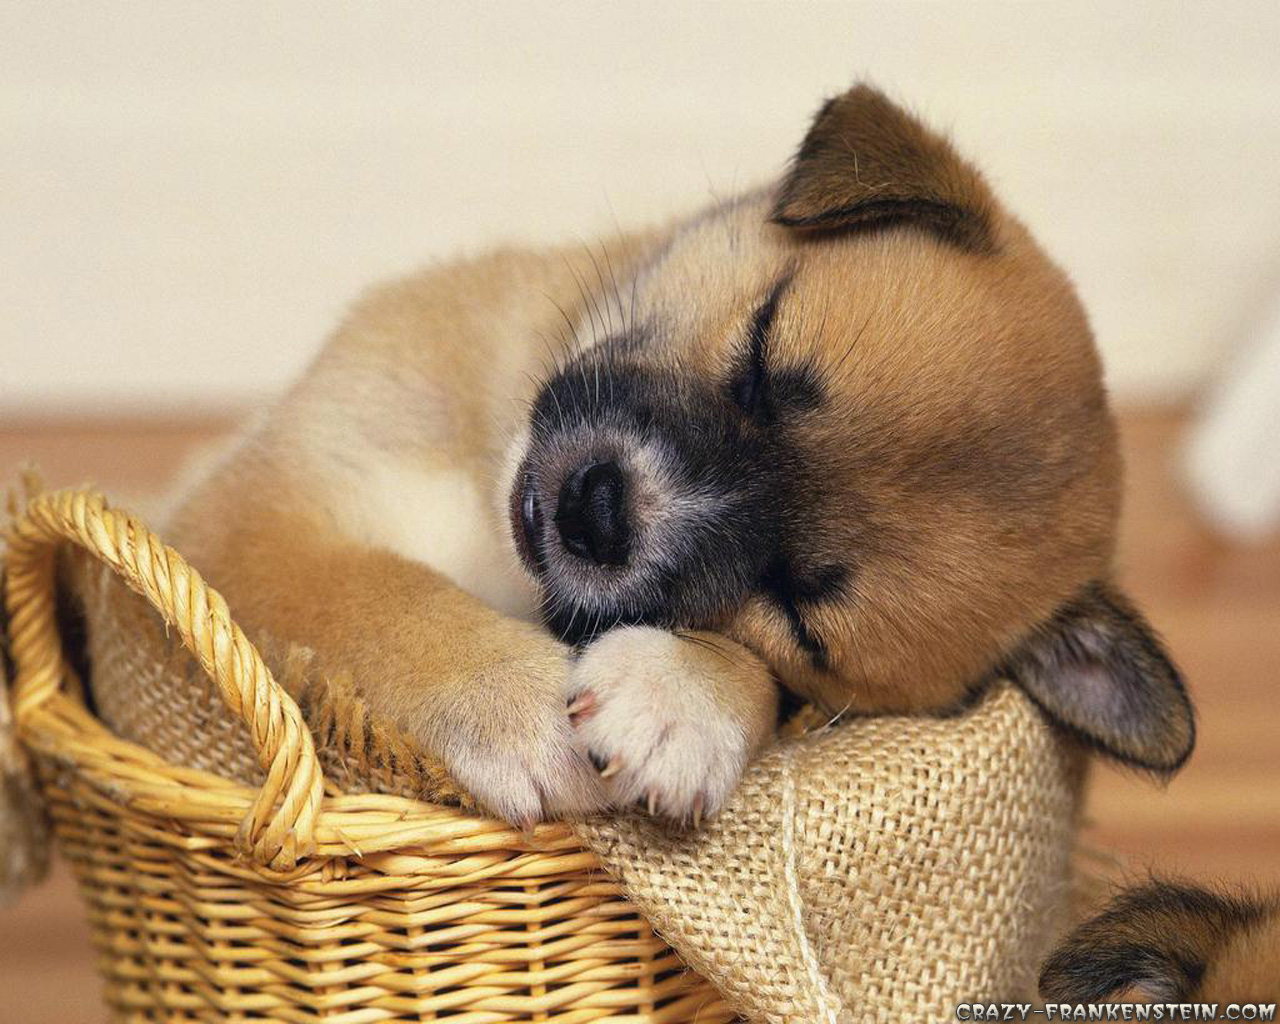 Cute Puppy Sleeping Animals Wallpapers 1280x1024 Pixel 416 Kb Jpg